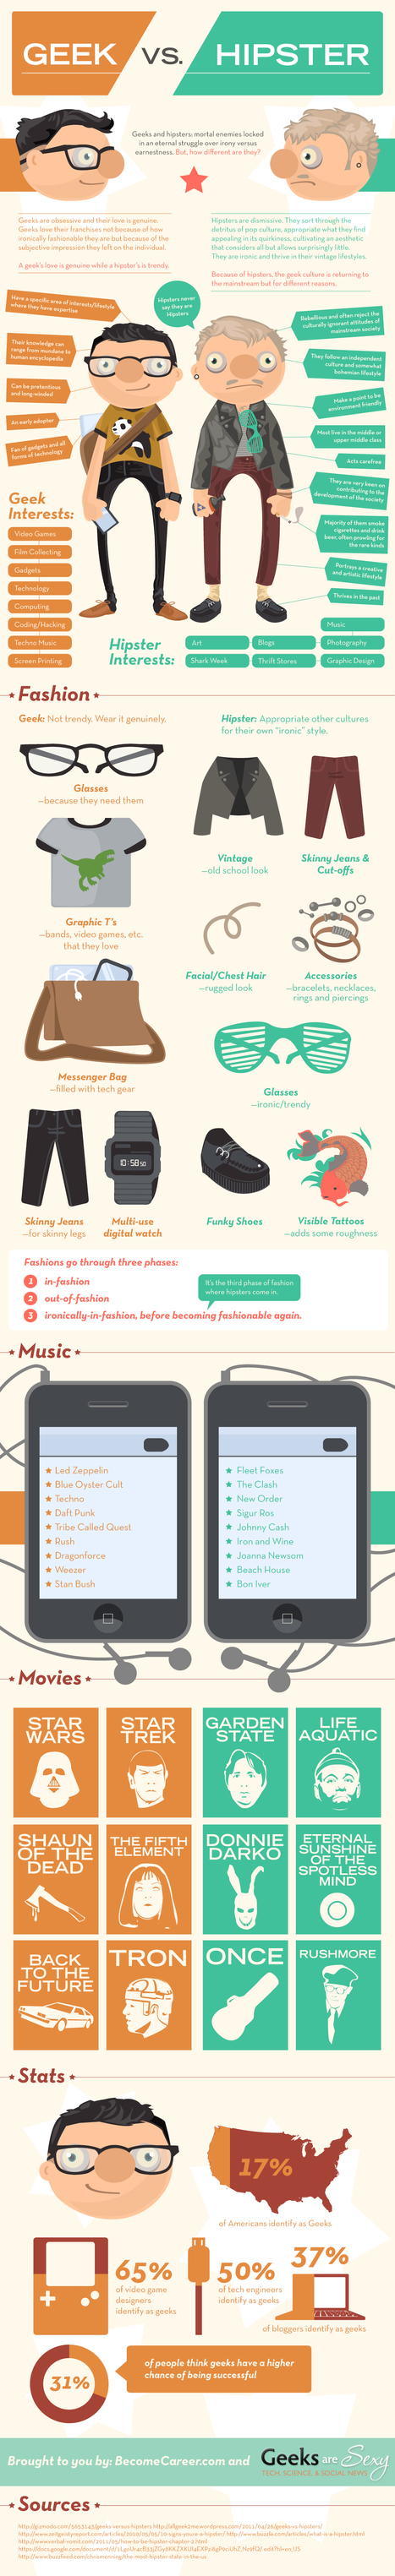 Geeks vs. Hipsters [Infographic] | The Awkwardly Twisted | Scoop.it